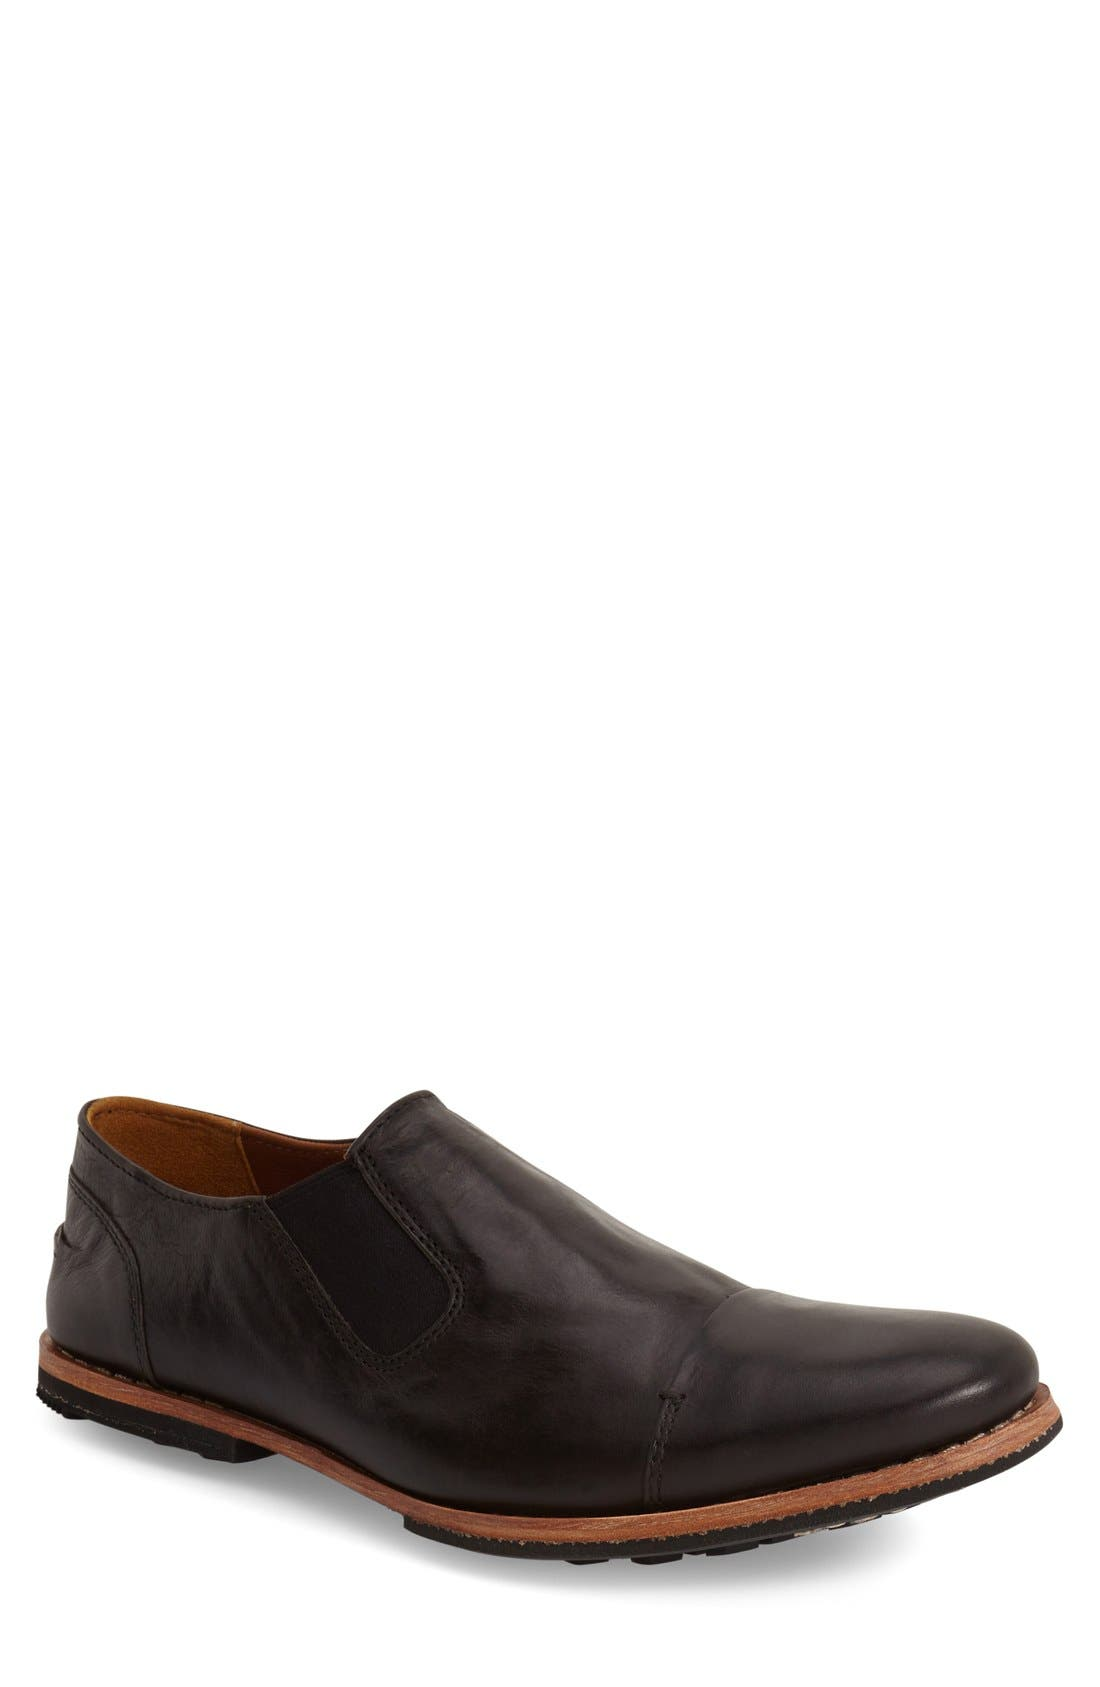 Alternate Image 1 Selected - Timberland 'Lost History' Venetian Loafer (Men)